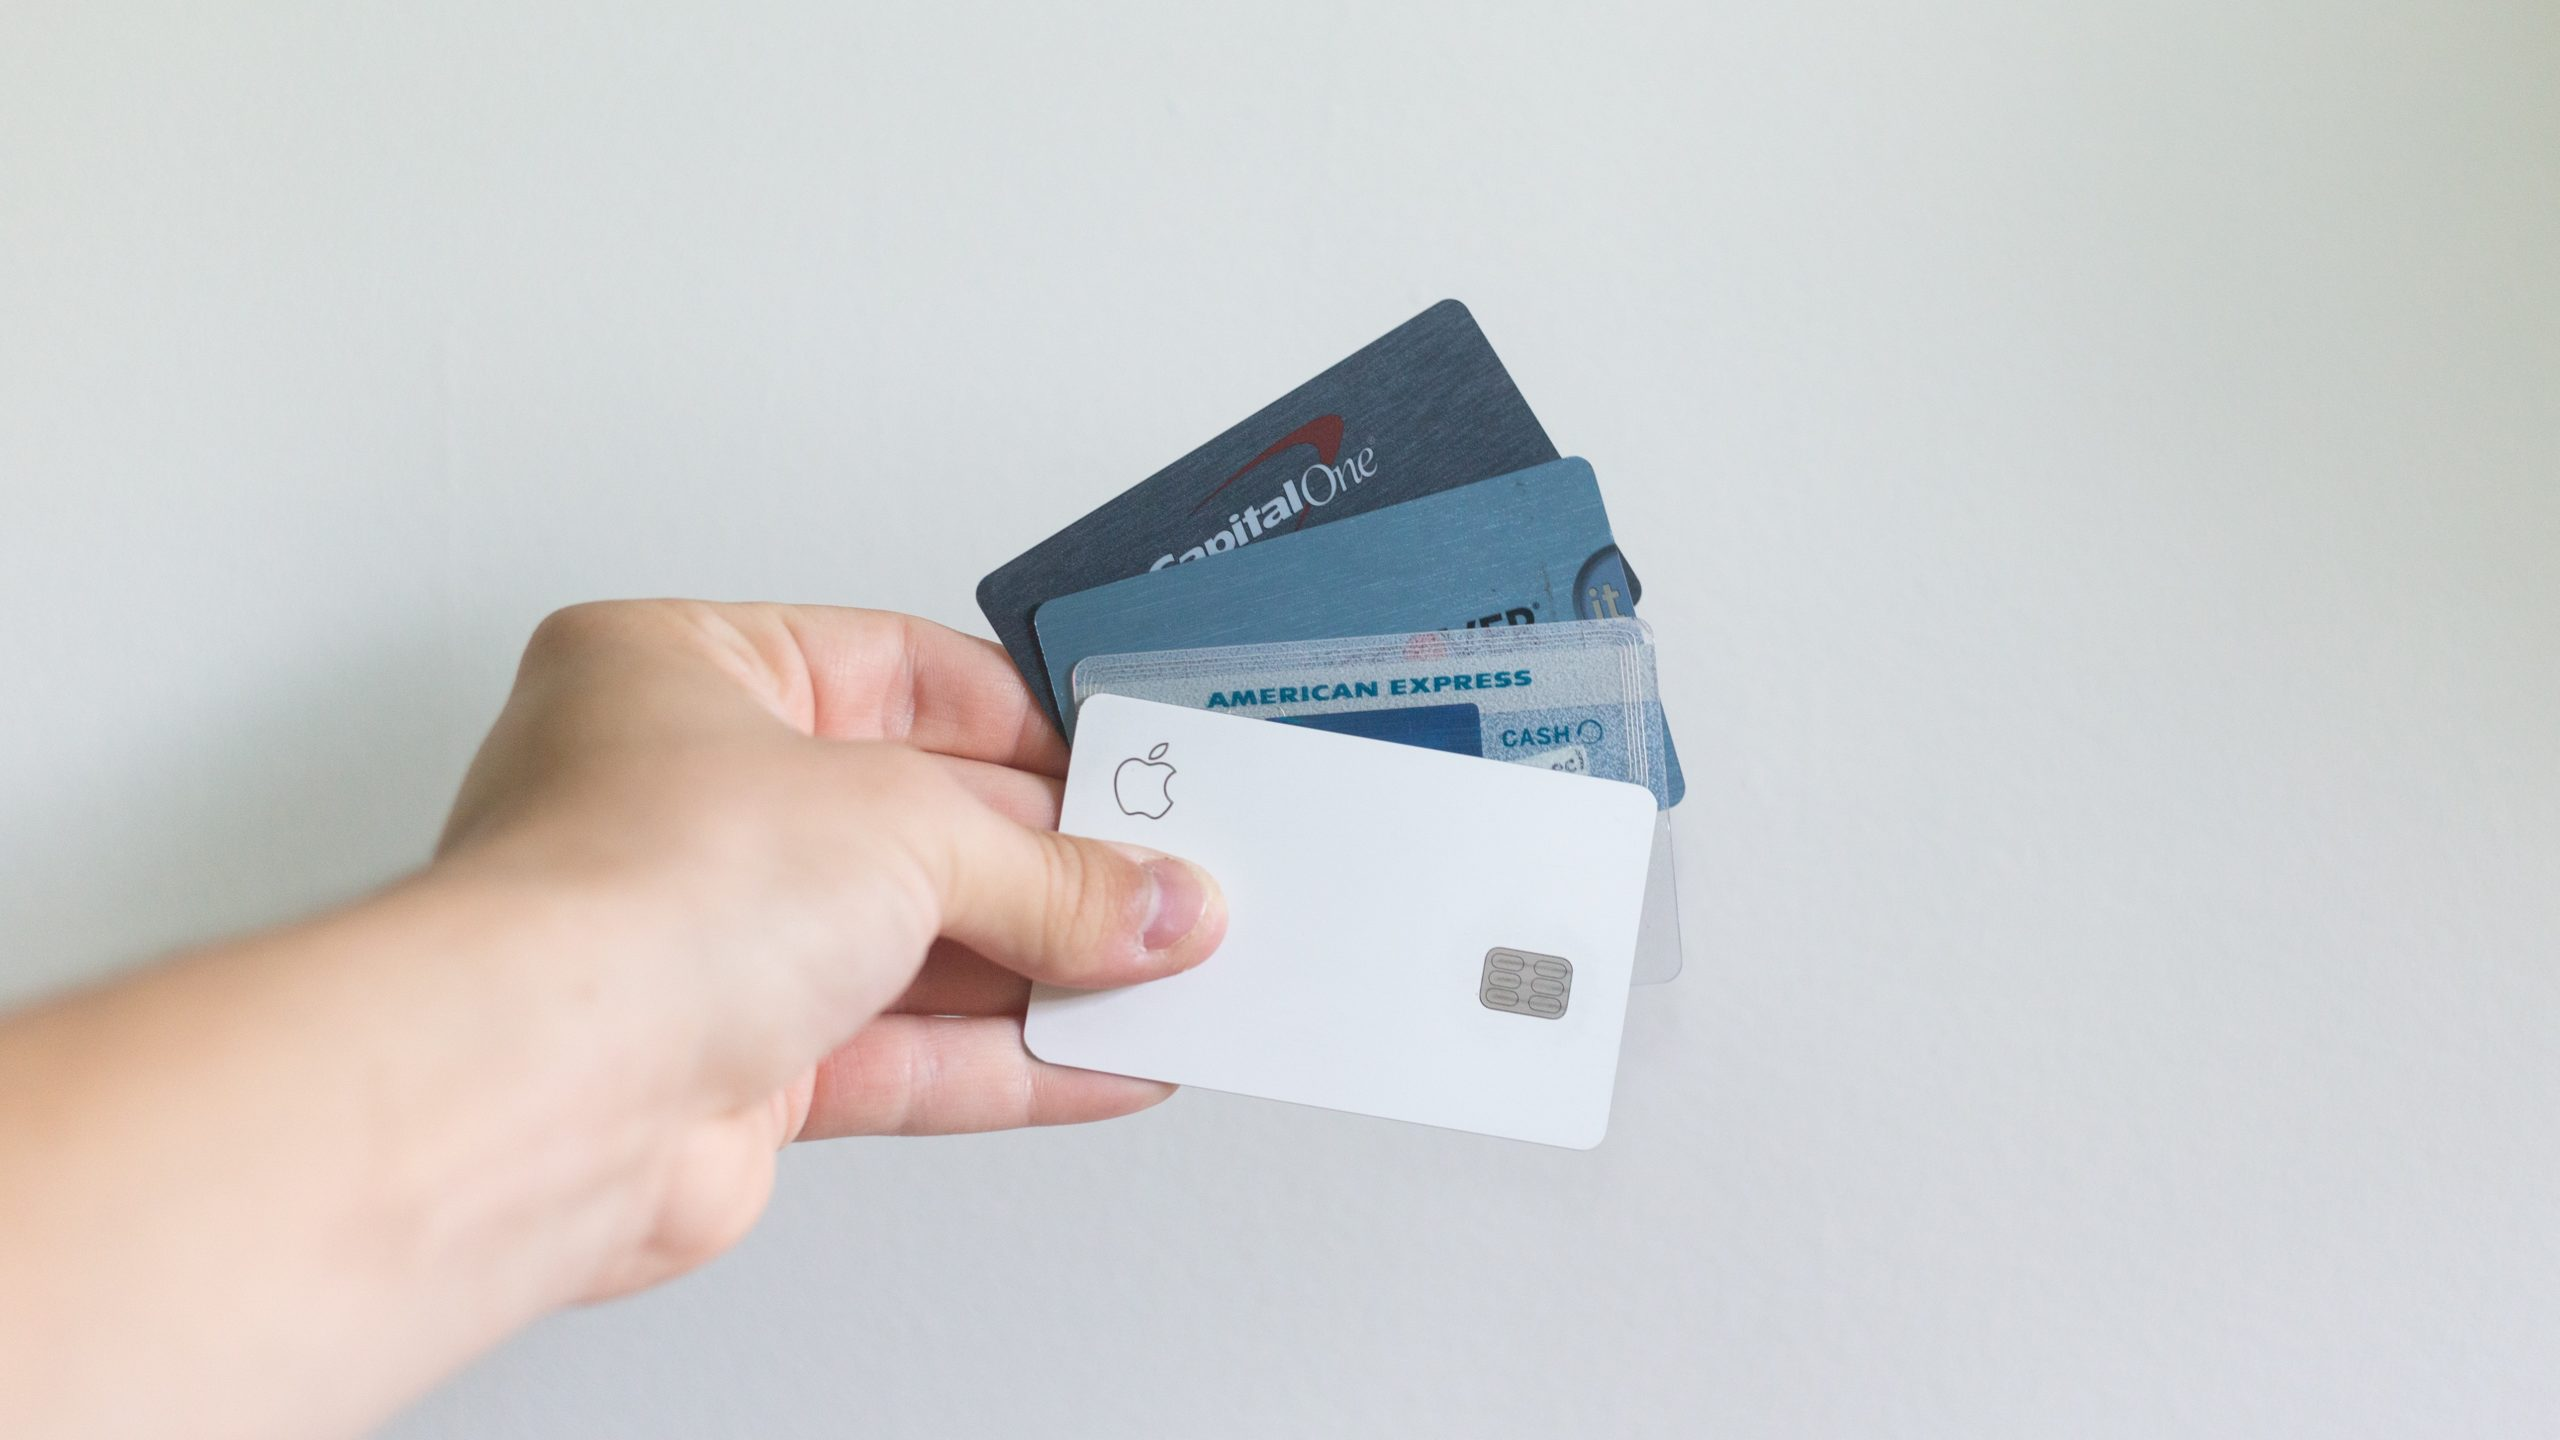 hand holding panned credit cards, highlighting means of acquiring credit for a mortgage